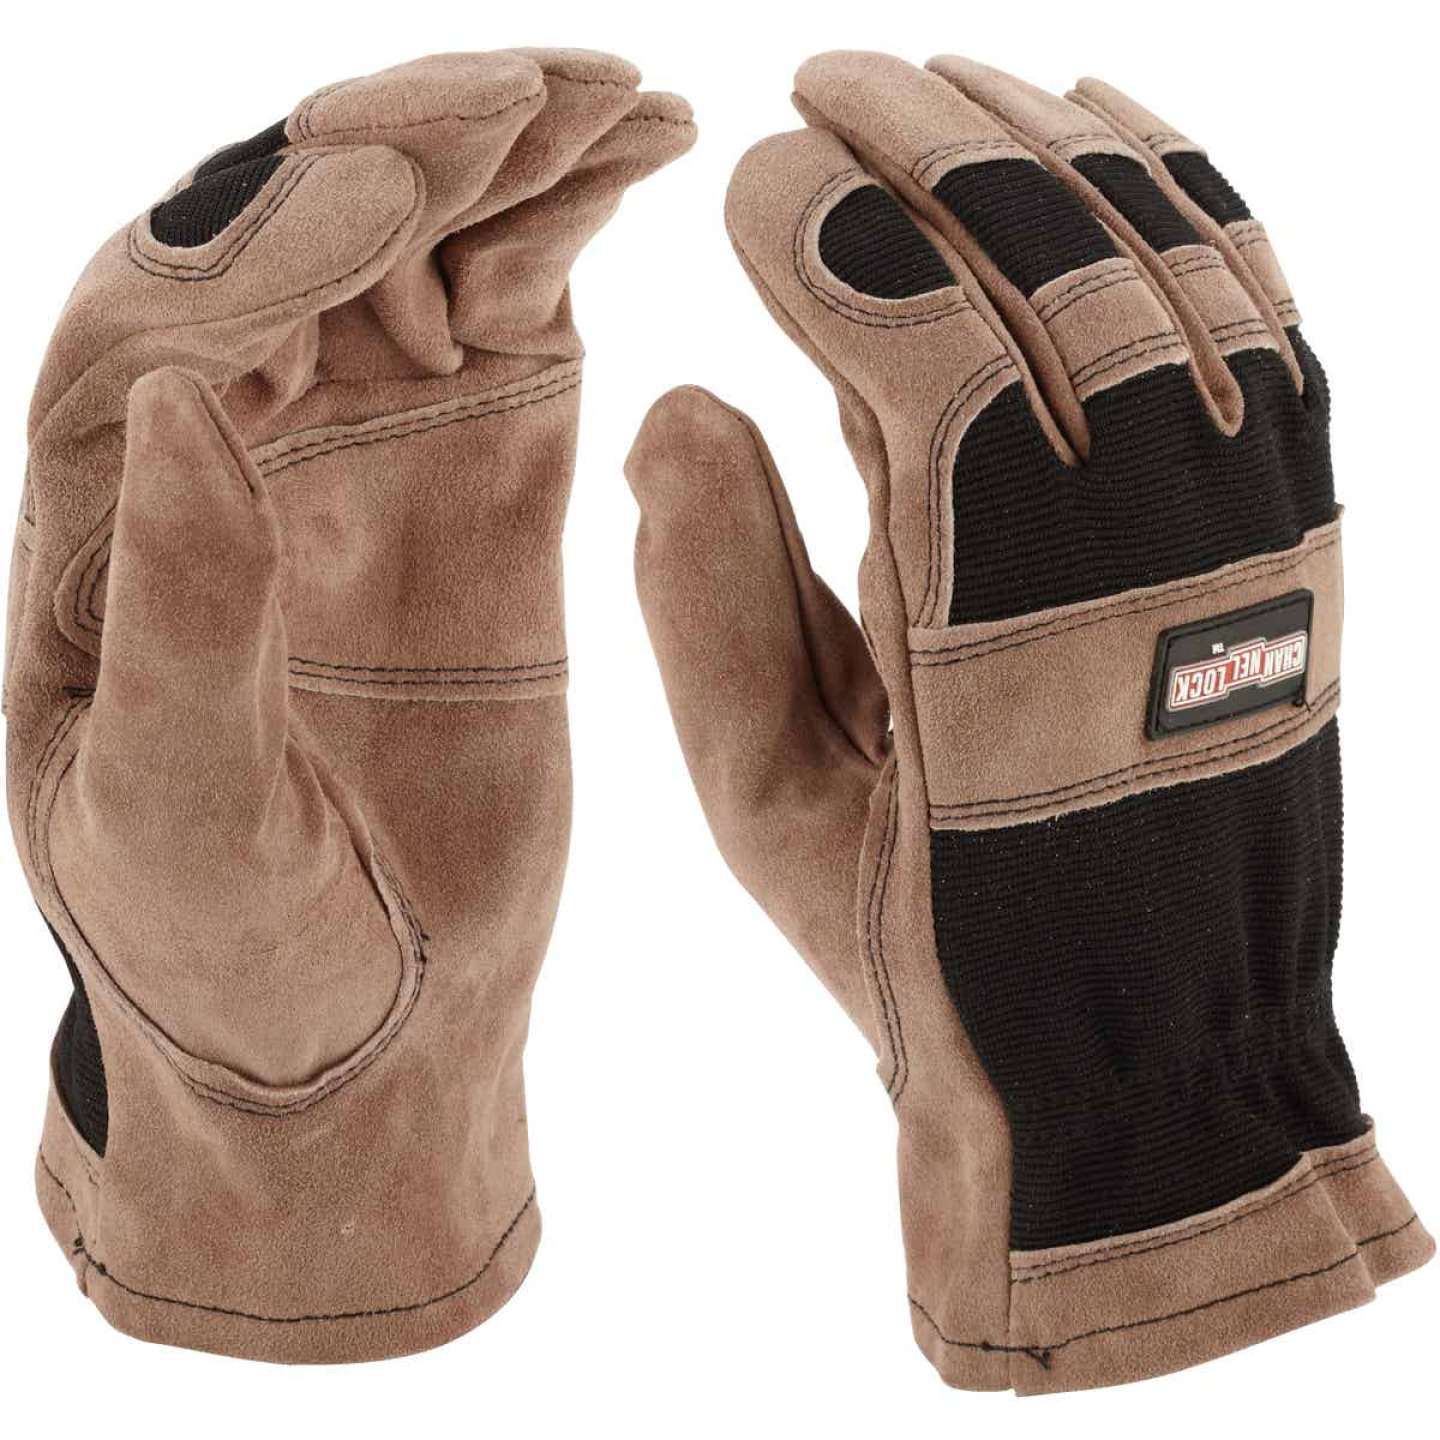 Channellock Men's Large Leather Work Glove Image 8